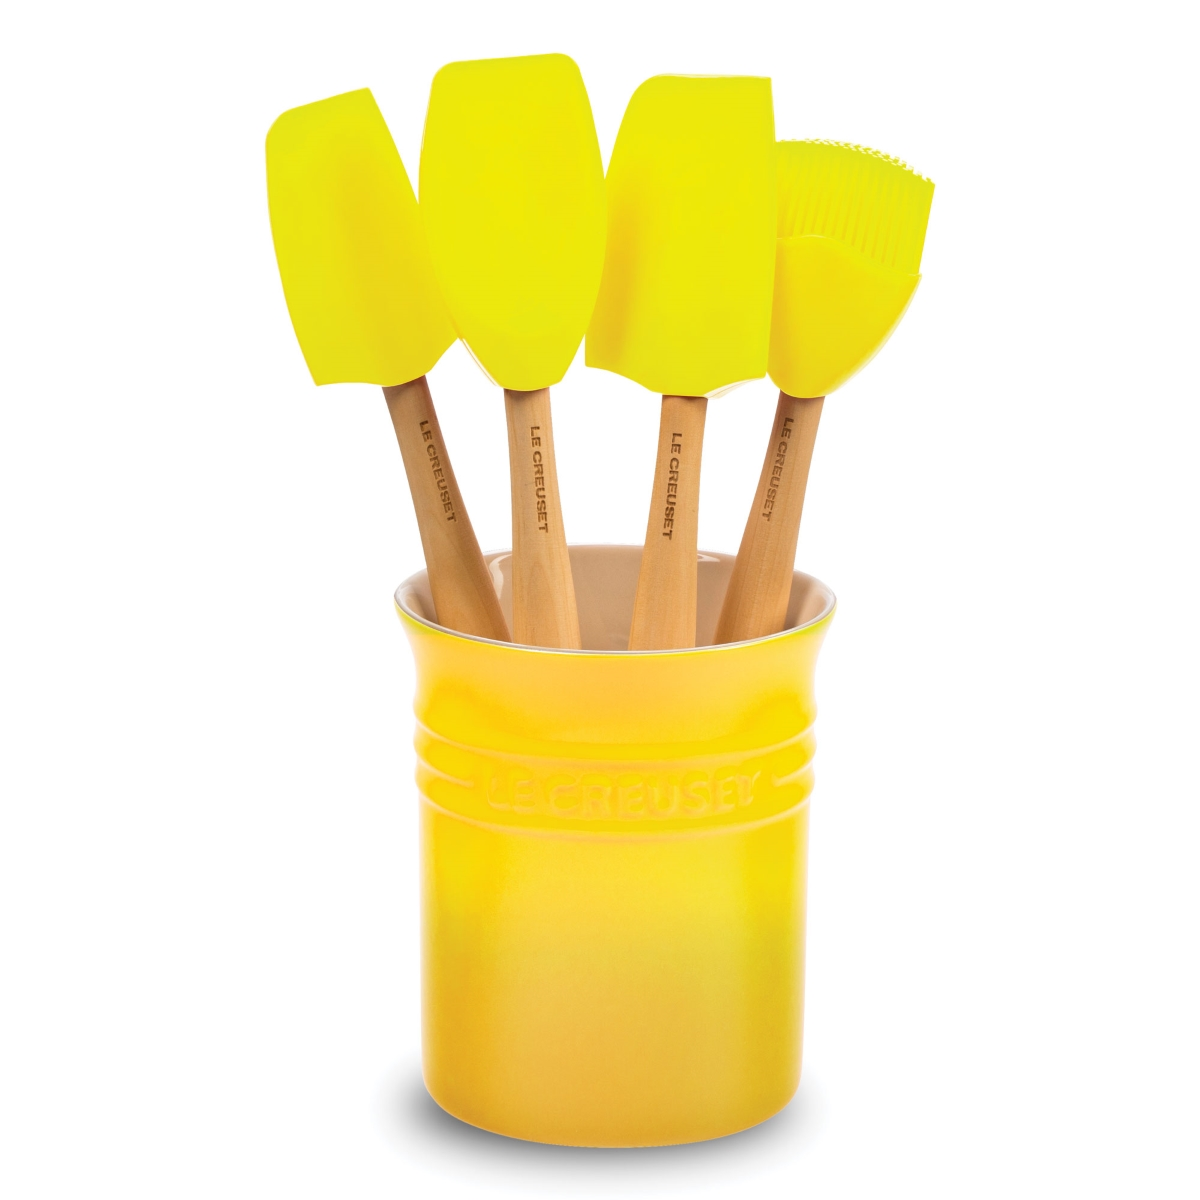 Le Creuset 5-piece Silicone Utensil Set with Crock